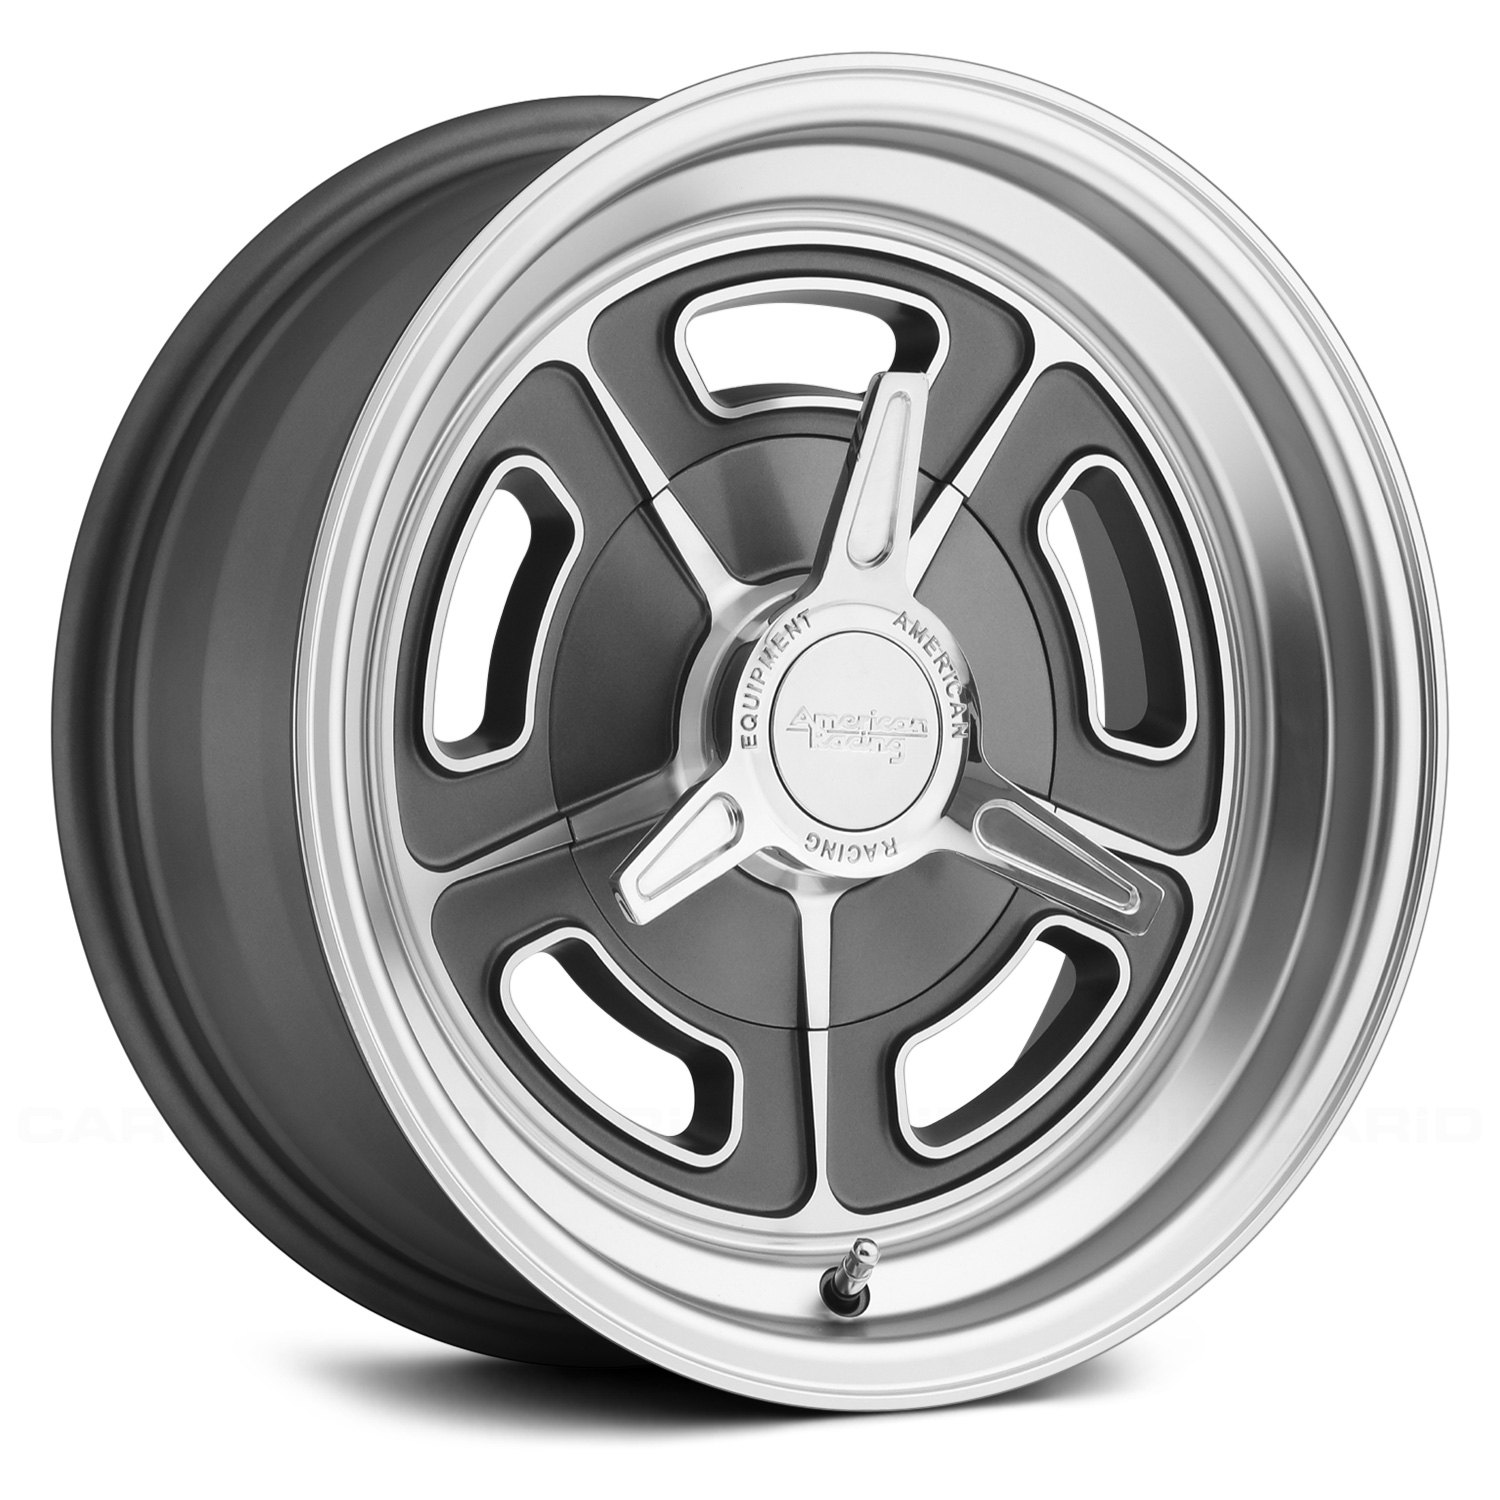 Chrome Rim Repair >> 15x5 AMERICAN RACING Wheels -12 | 5x114.3 | 76.5 VN502 Rims Magnesium Gray | eBay